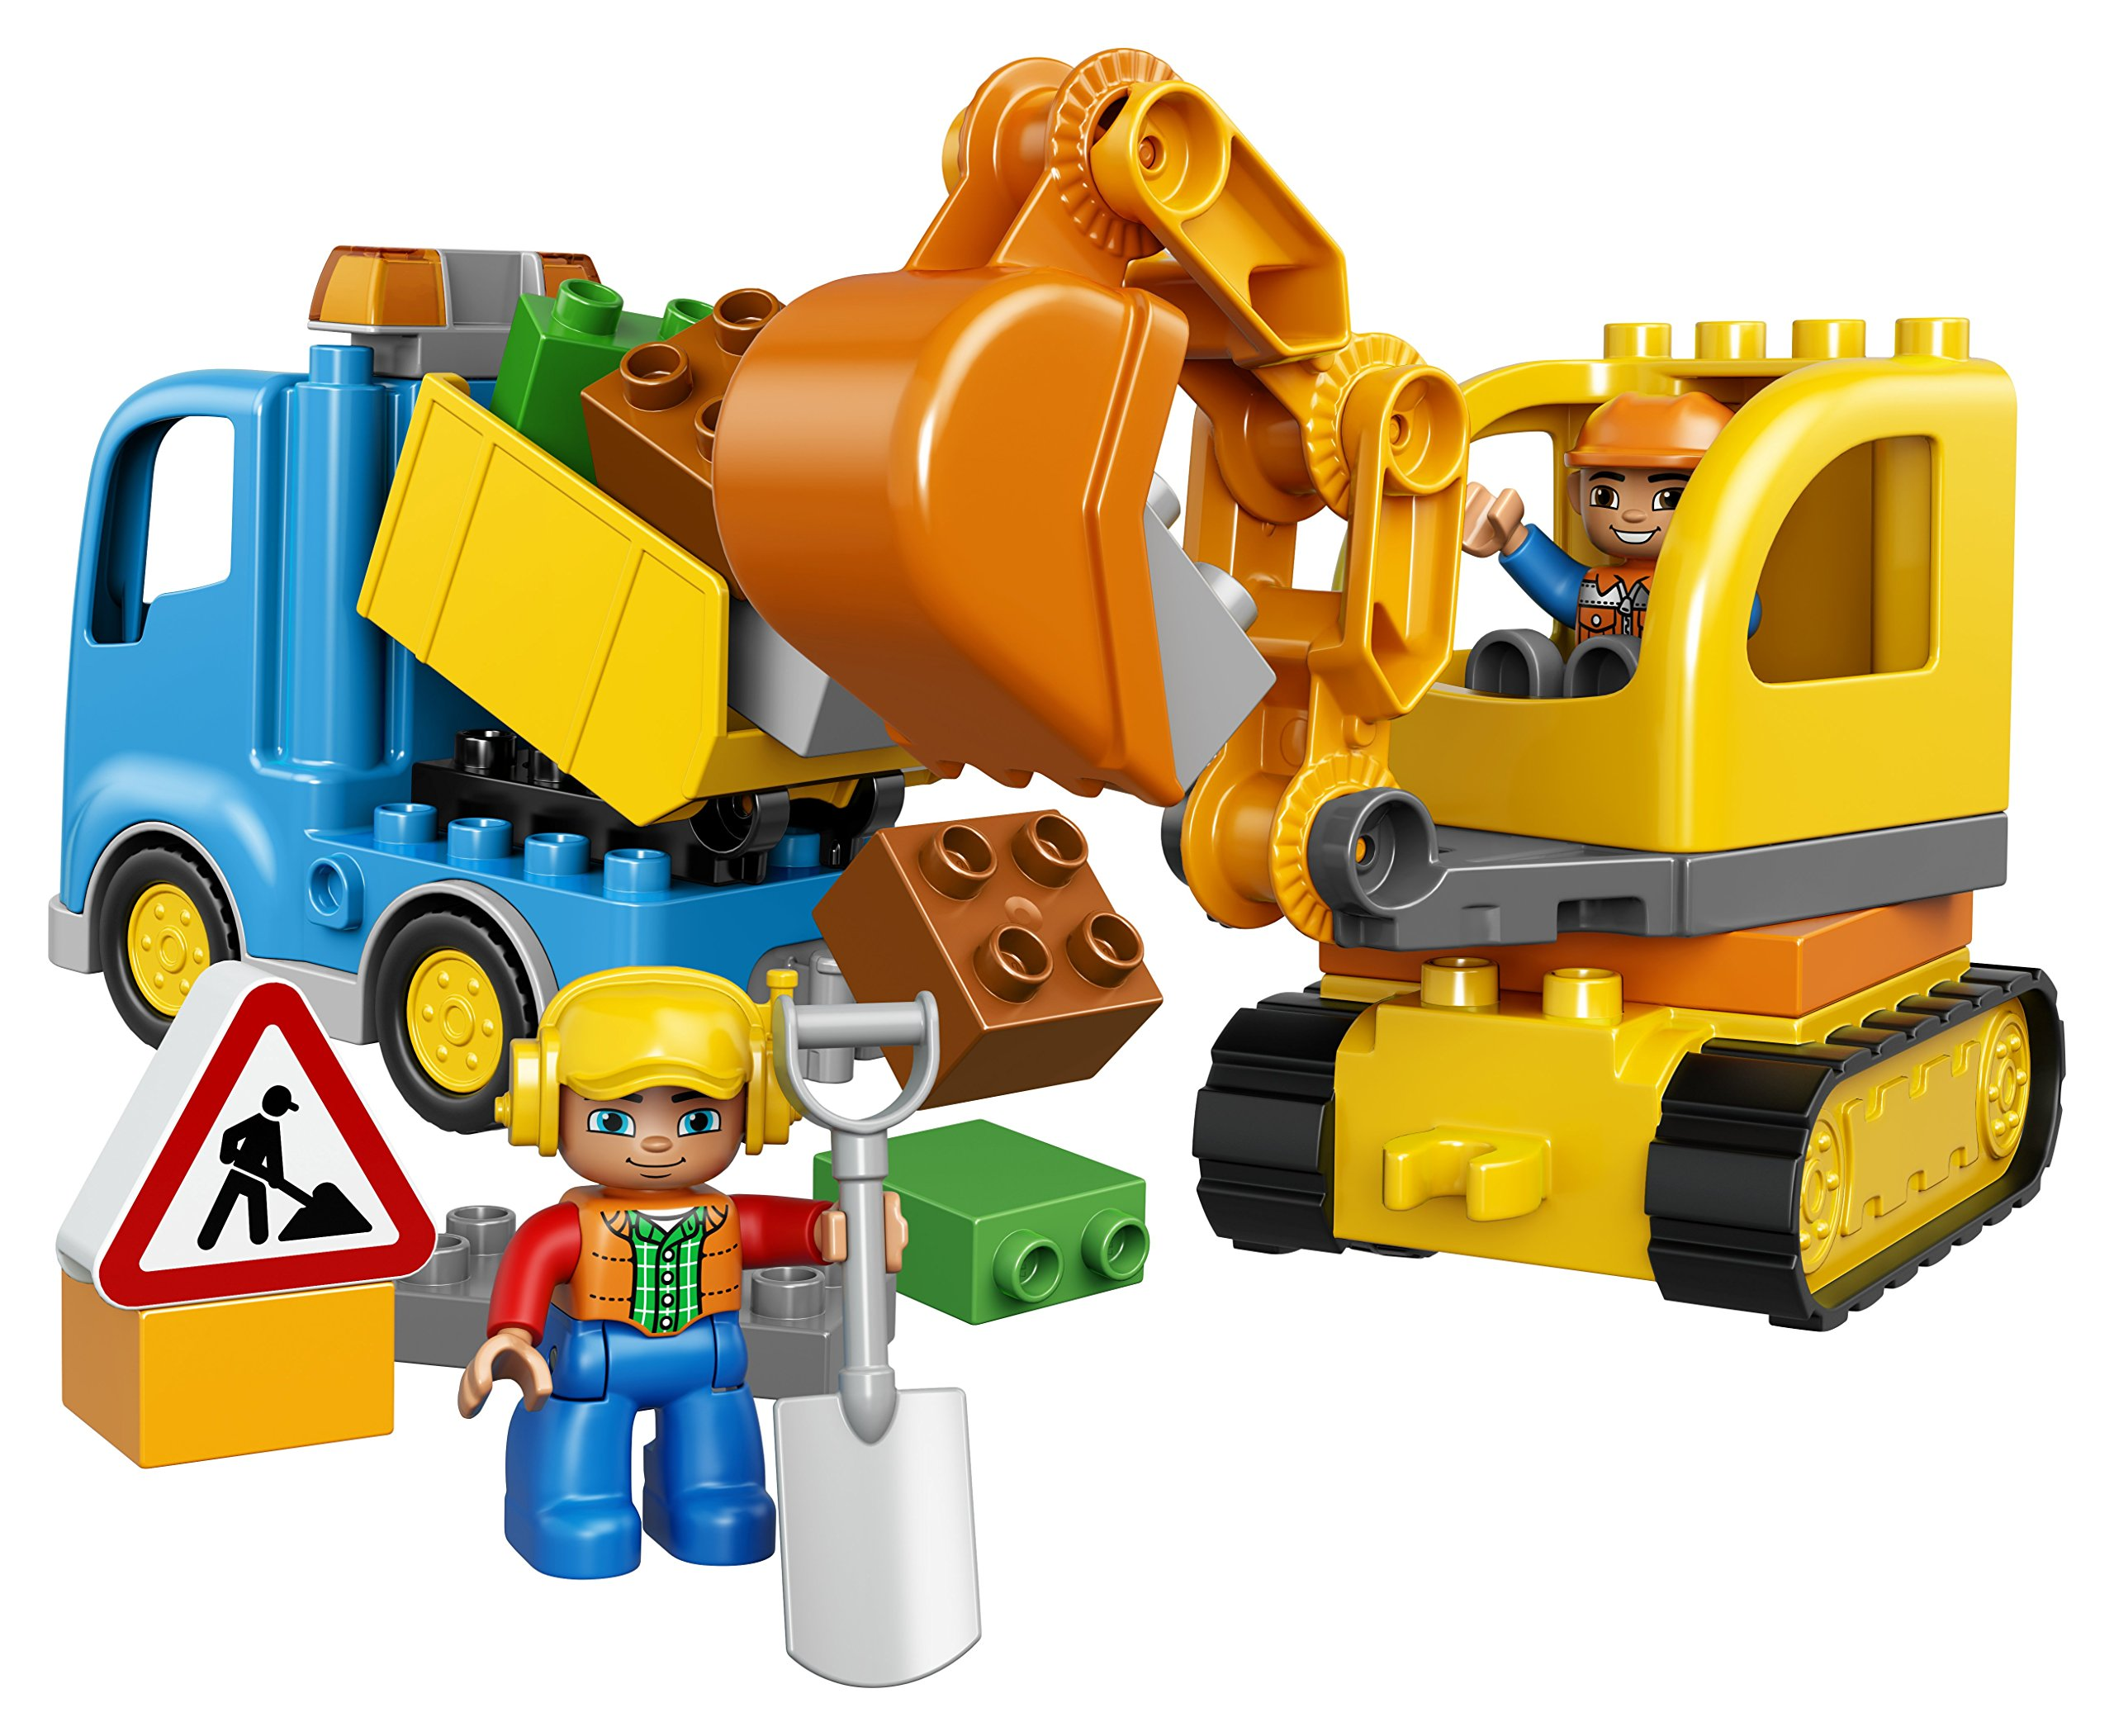 LEGO DUPLO Town Toddler Truck Toy by LEGO (Image #4)